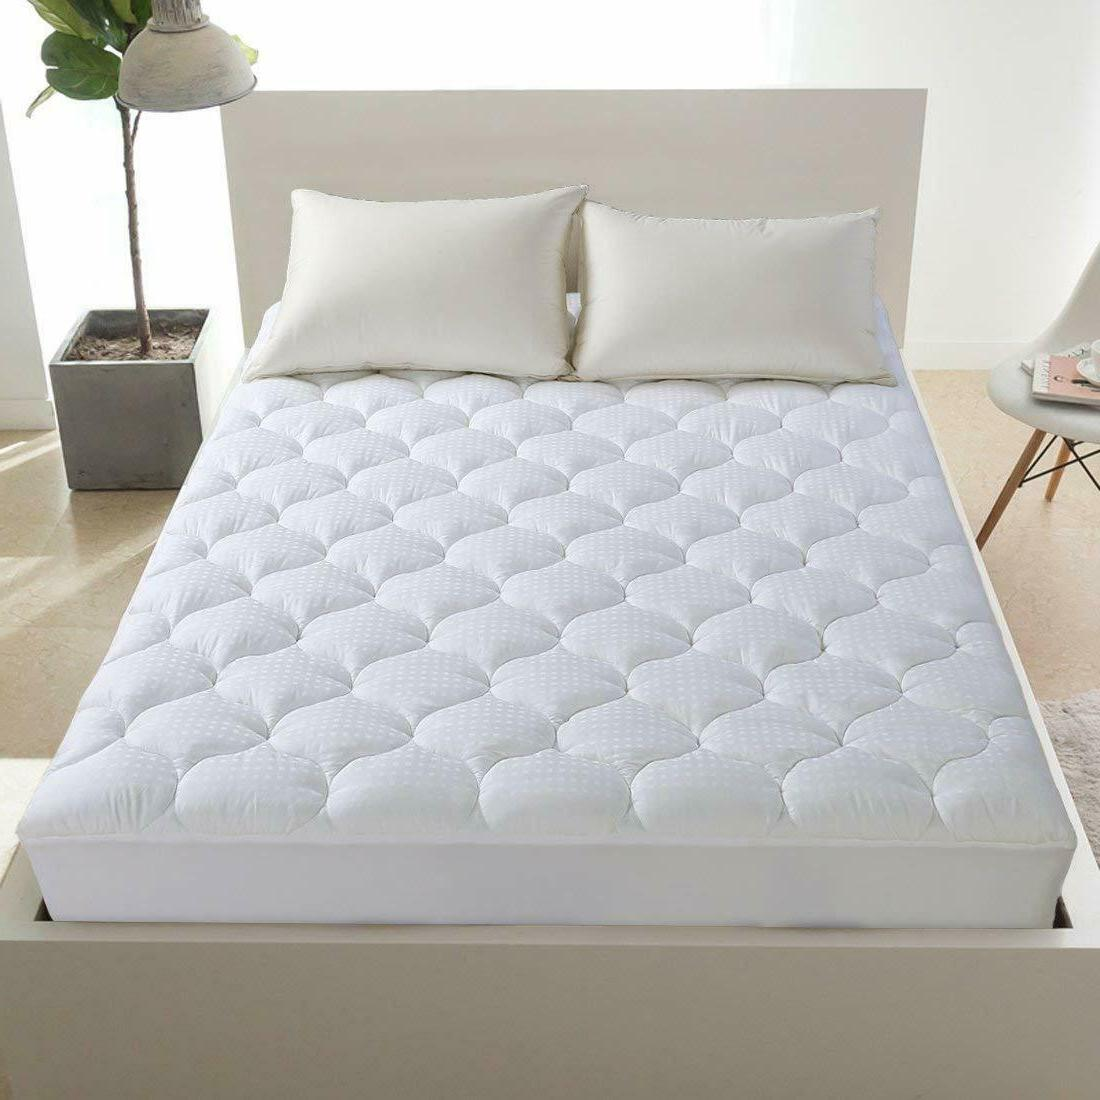 Leisure Town Queen Mattress Pad Cover Cooling Mattress Toppe